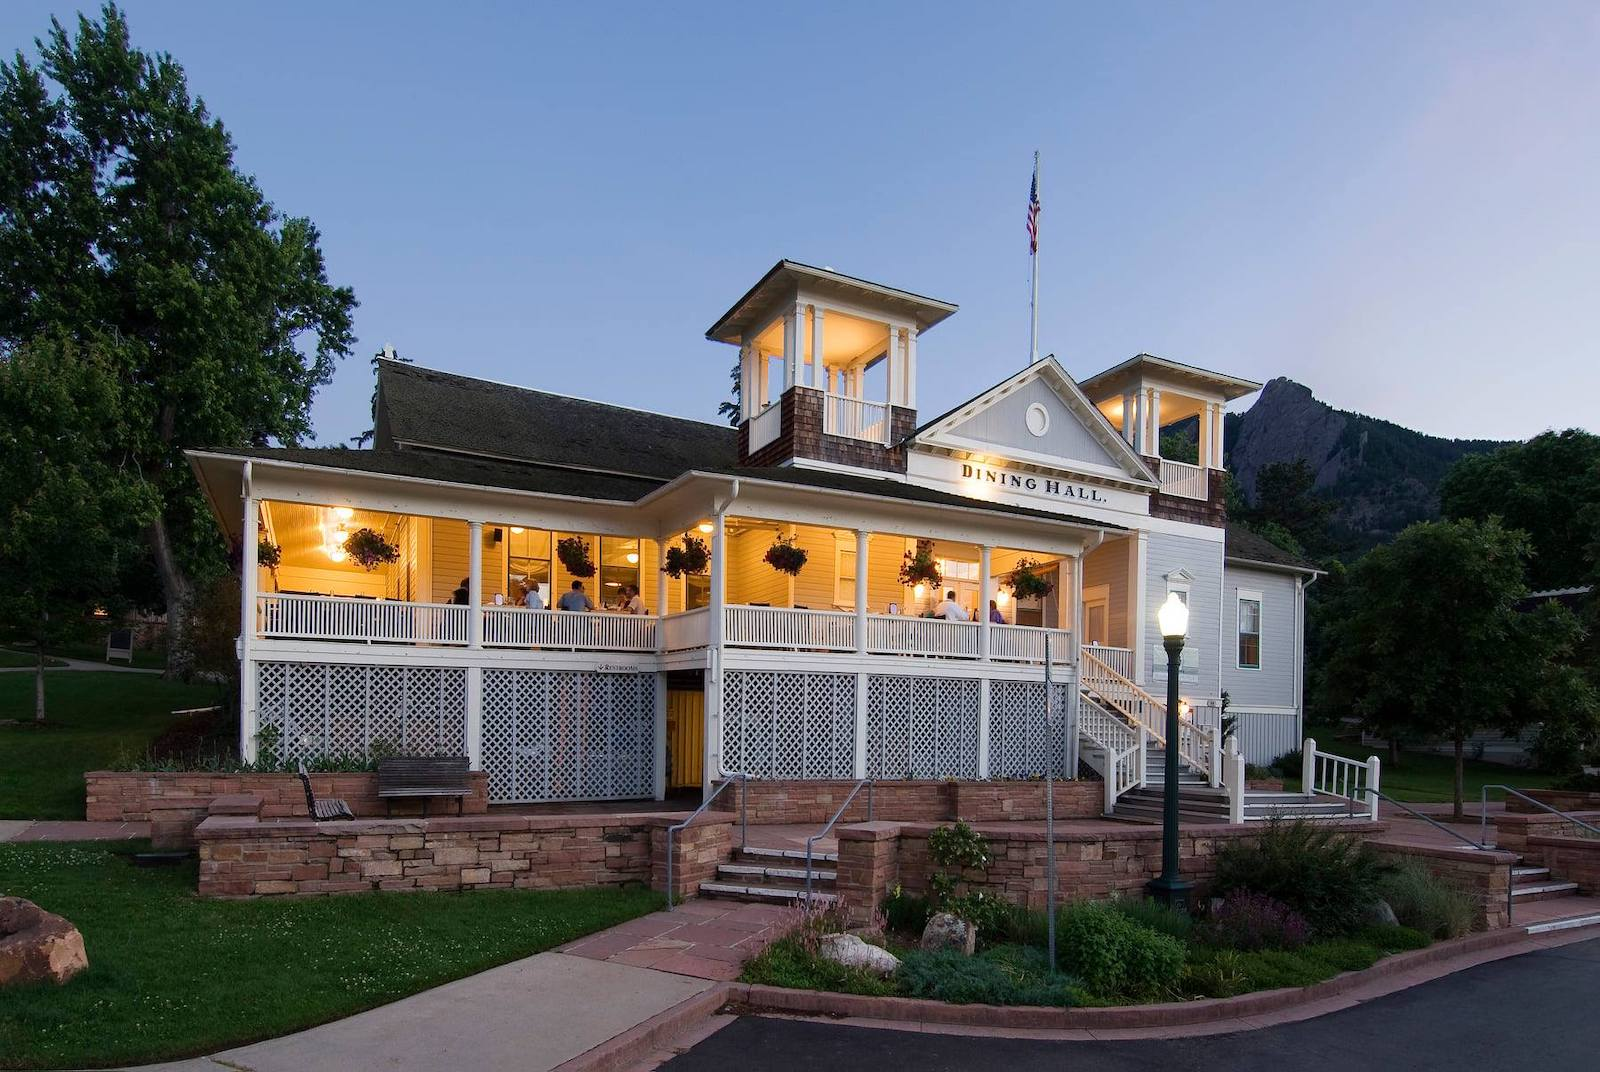 Chautauqua Dining Hall, Colorado